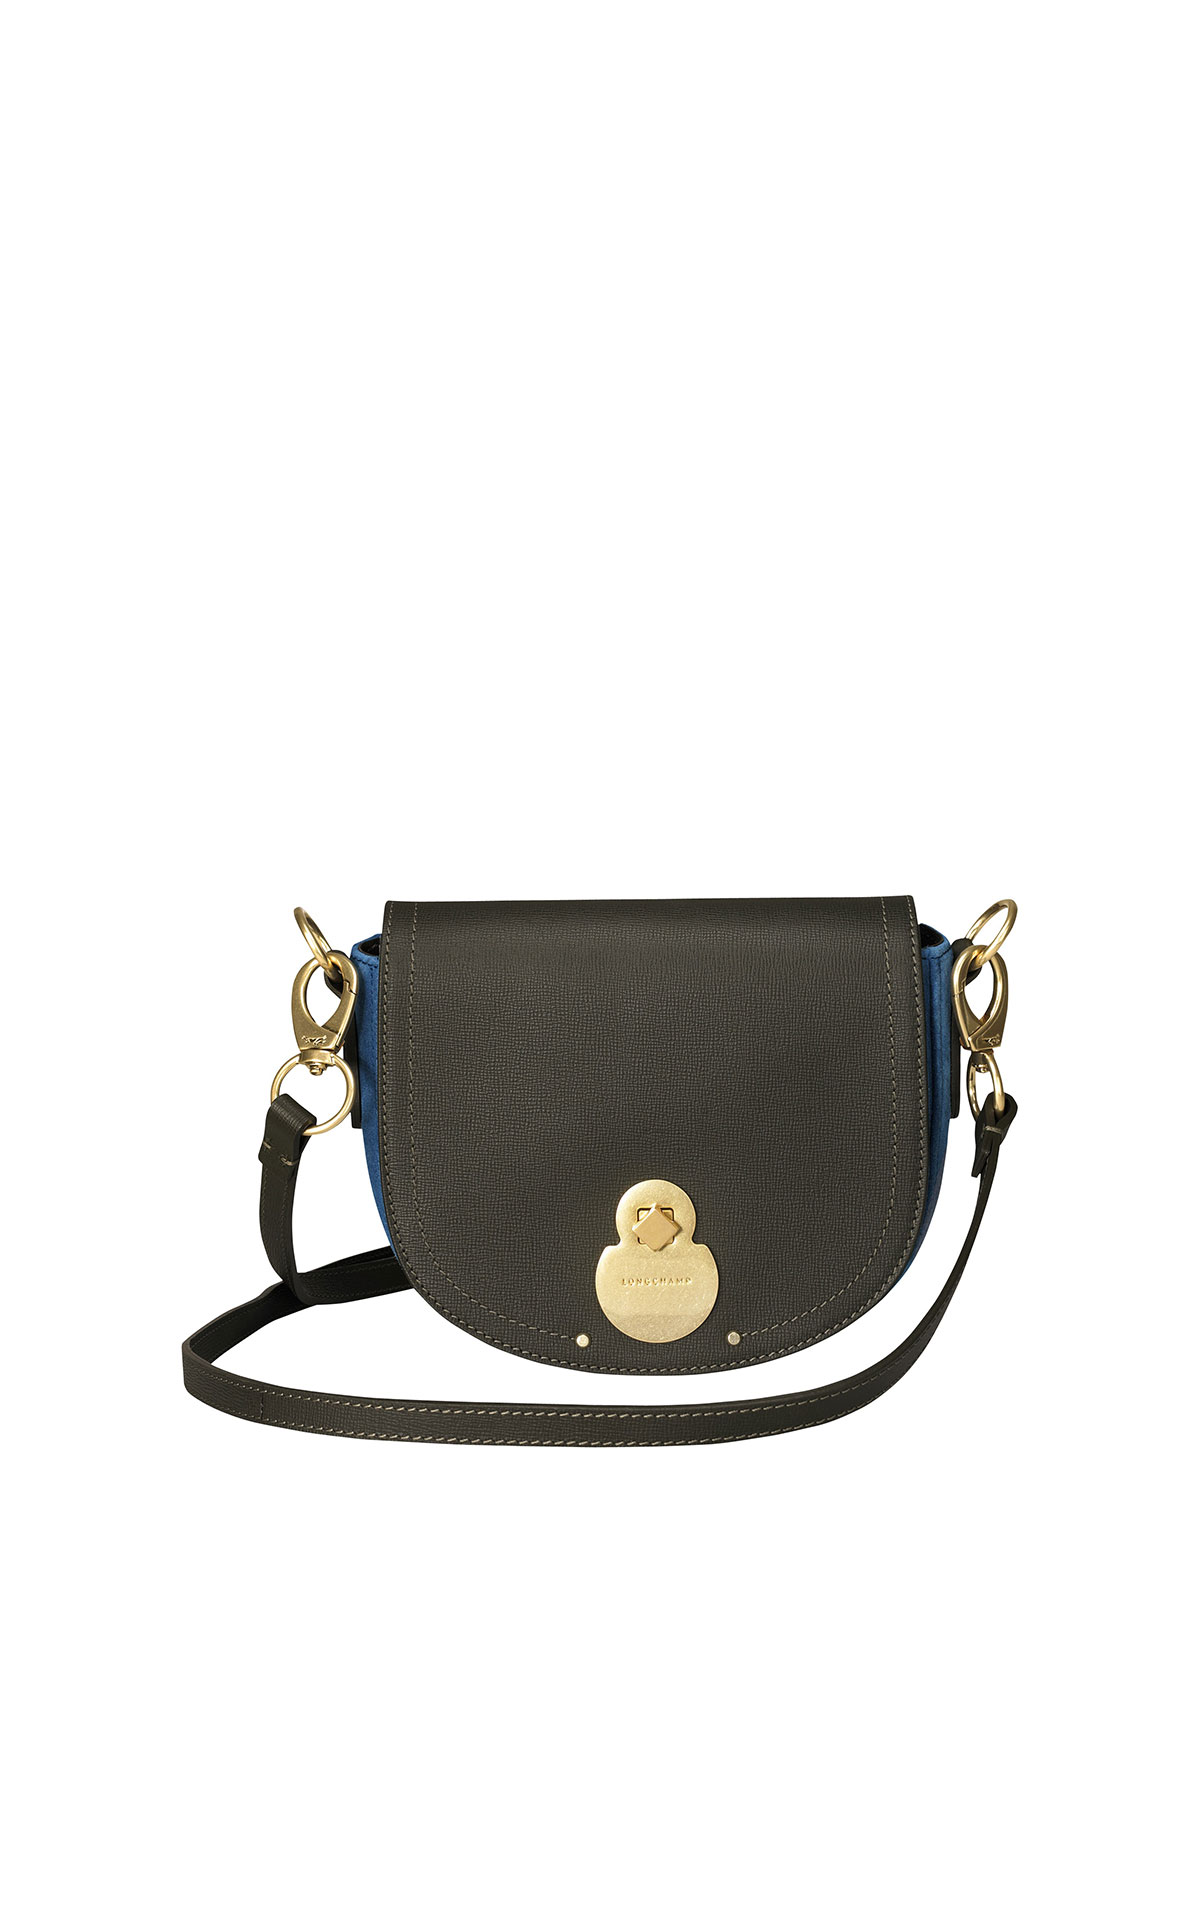 Longchamp Cavalcade small leathera nd suede crossbody bag in khaki and blue from Bicester Village